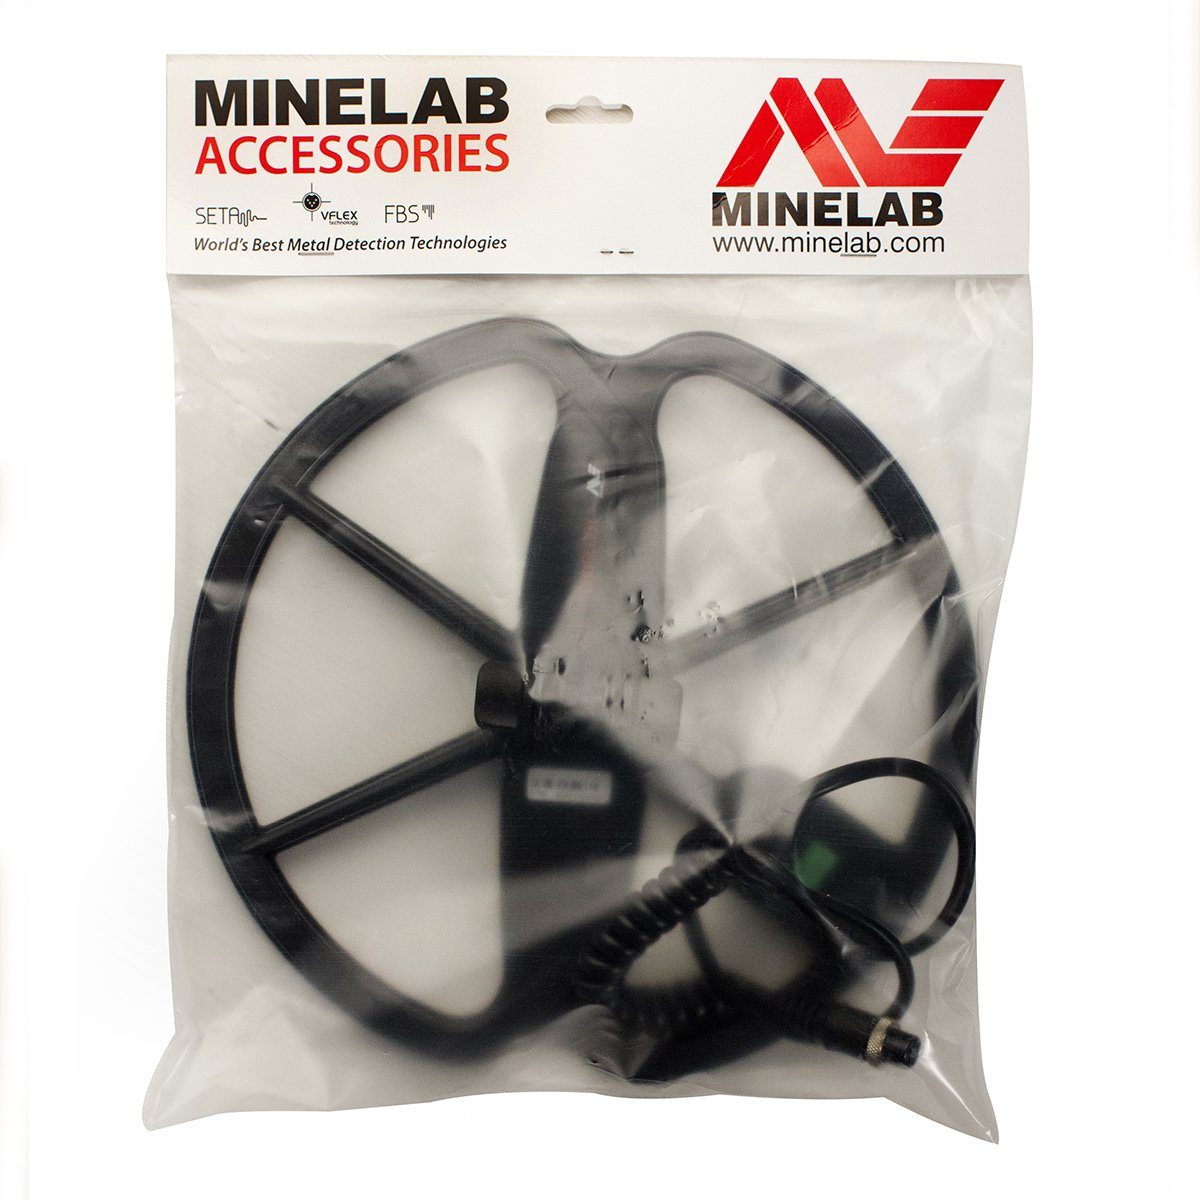 Amazon.com: Minelab FBS Double-D Coil Spare Garden Accessory, 11-Inch: Garden & Outdoor